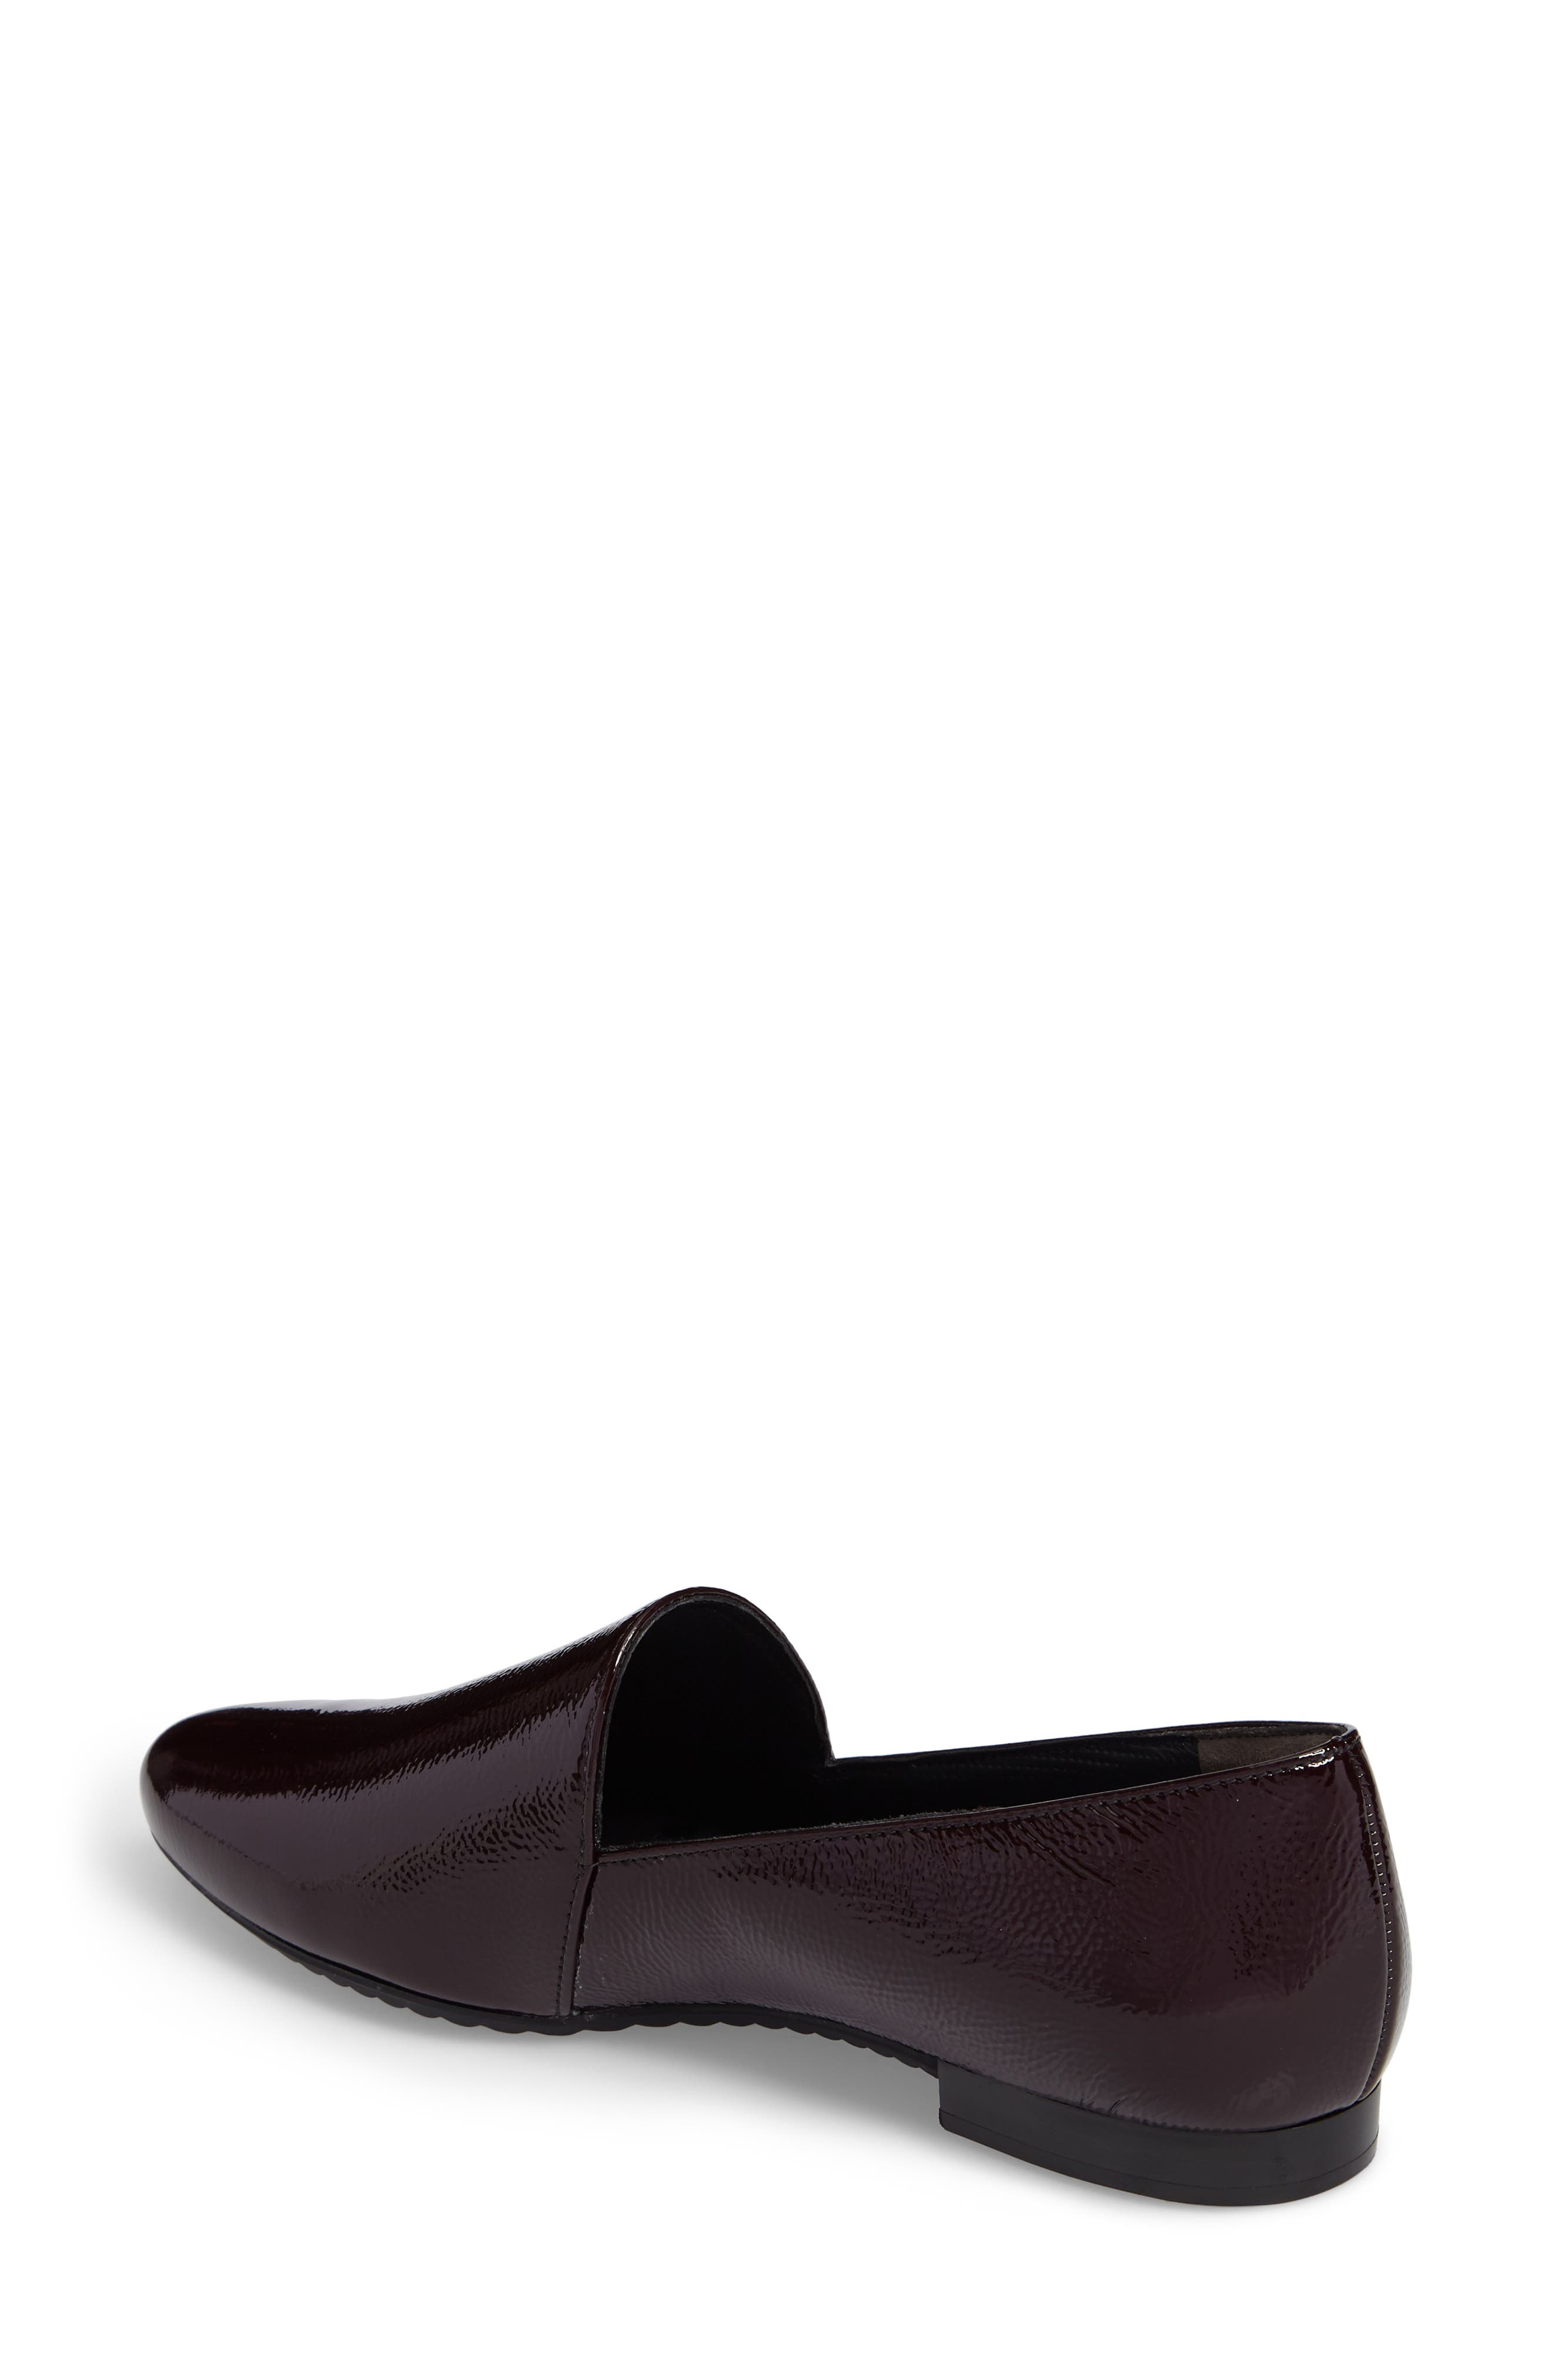 Naomi Loafer,                             Alternate thumbnail 6, color,